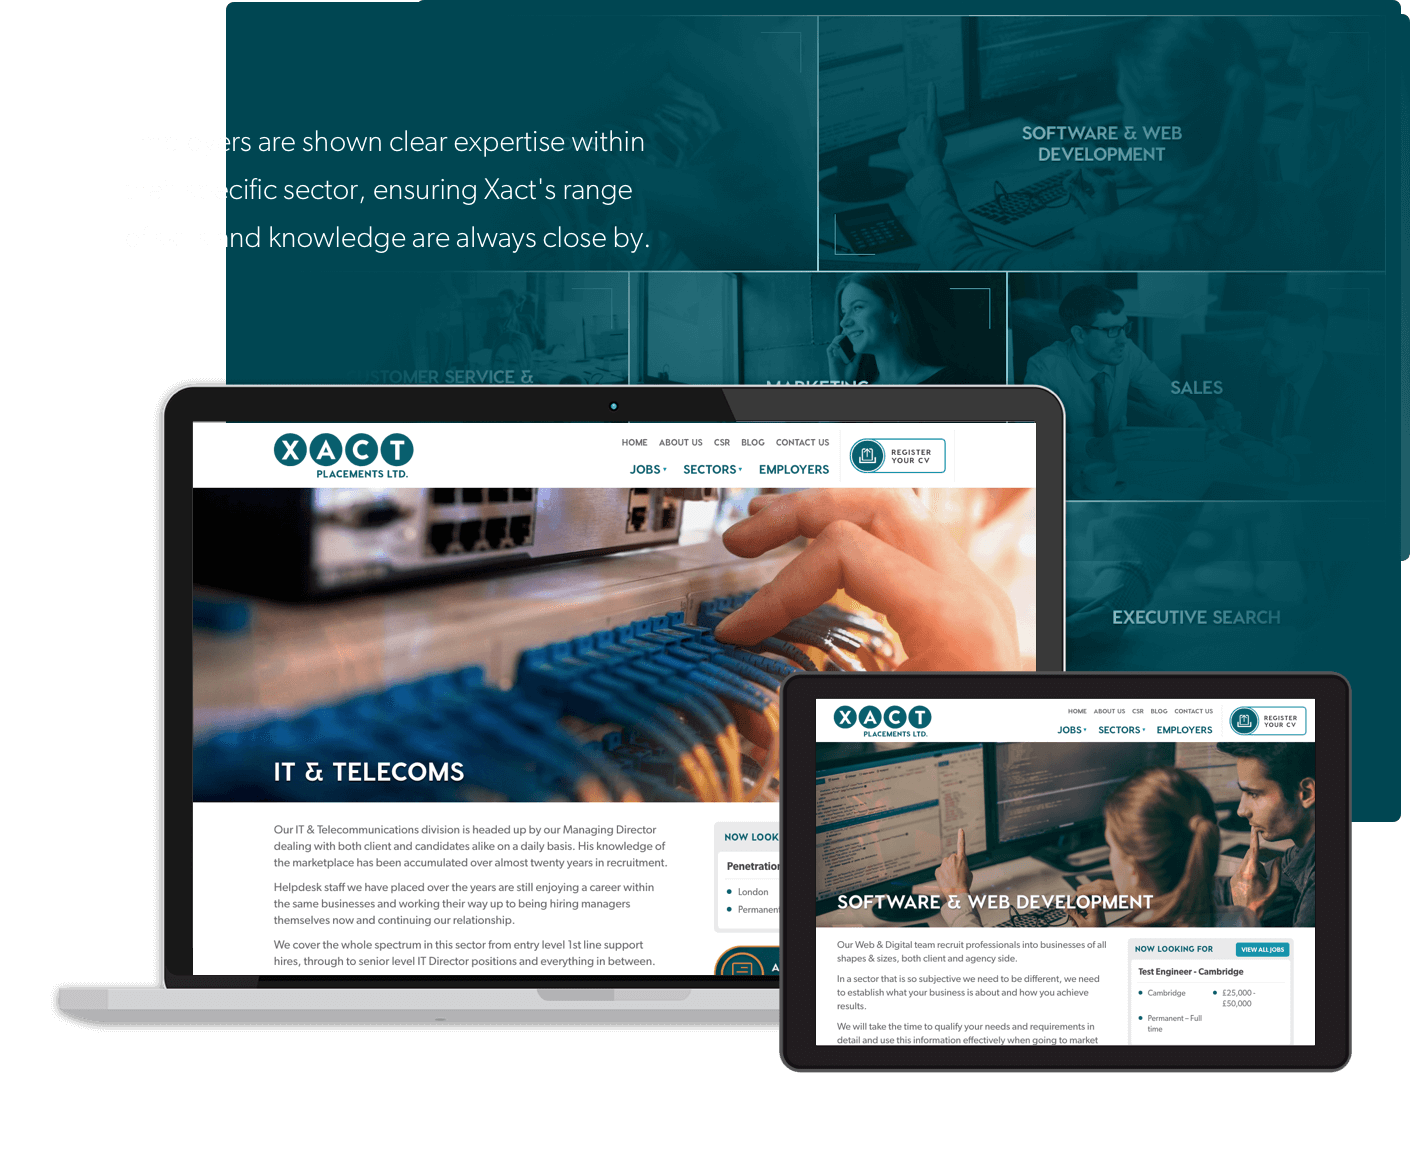 Responsive web design and user experience example from Xact Placements Ltd. website